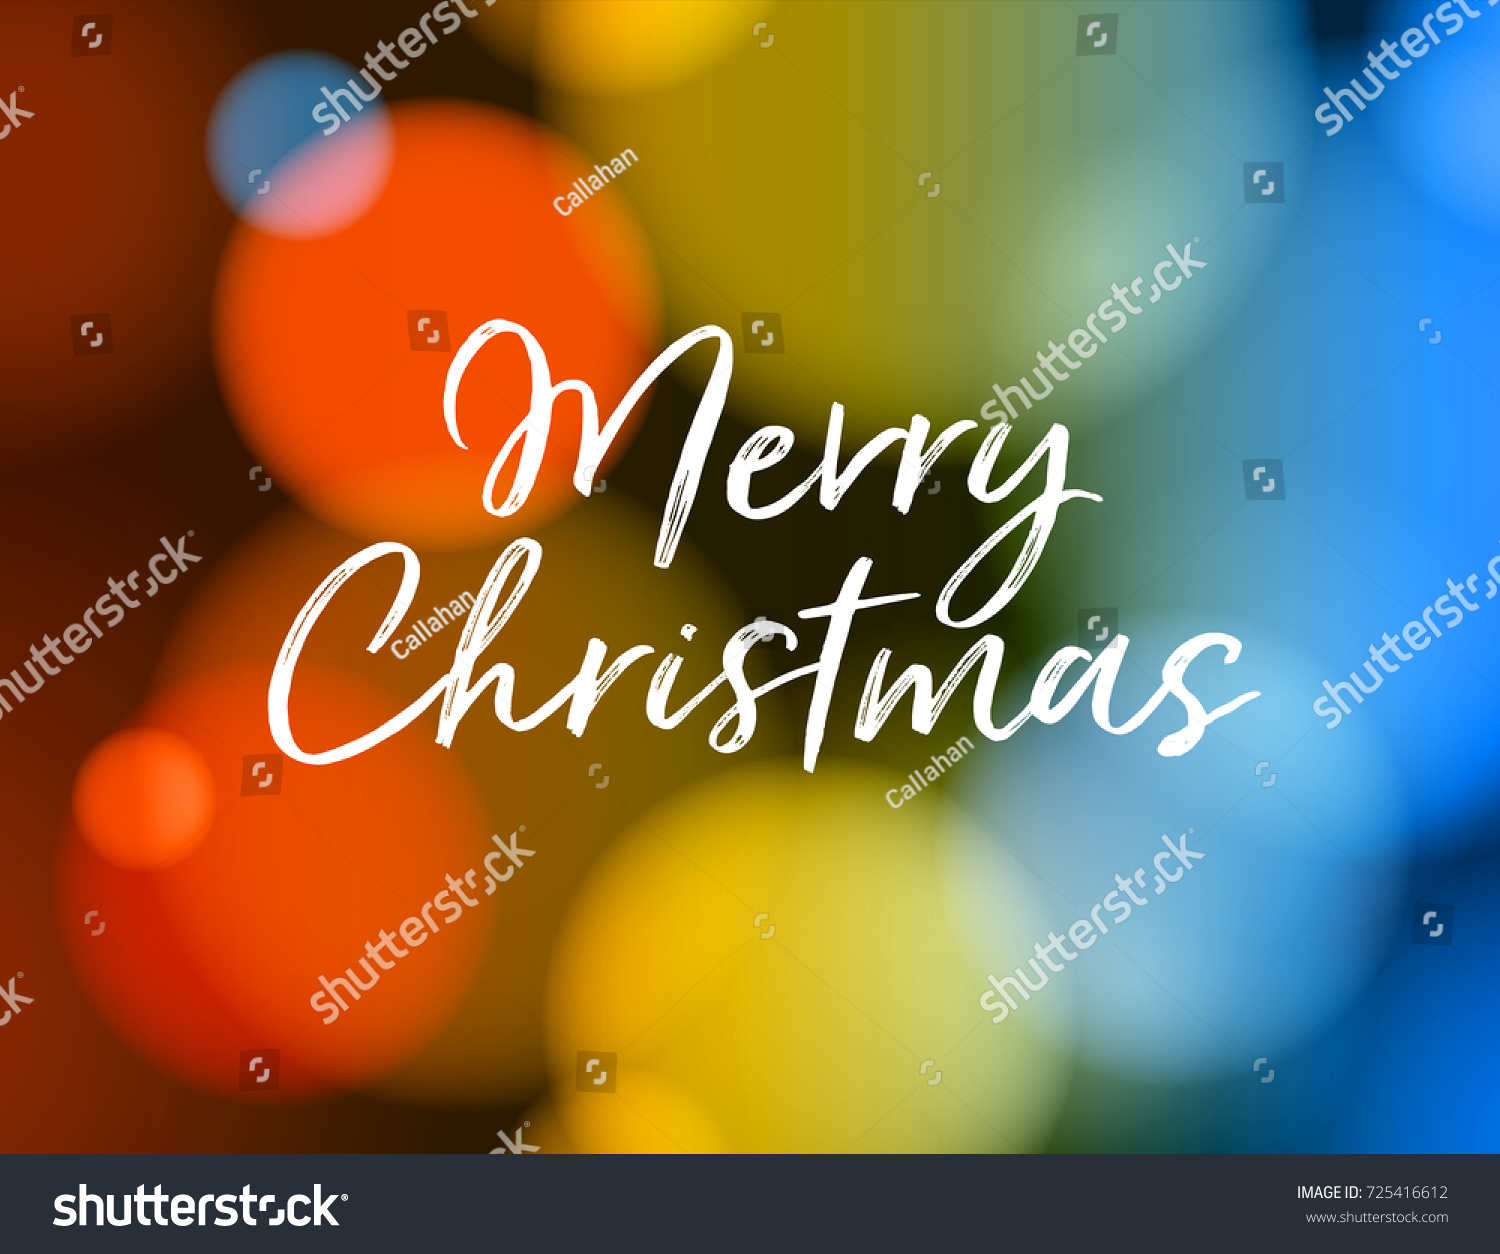 Merry Christmas Greeting Card Vector EPS Stock Vector (Royalty Free ...